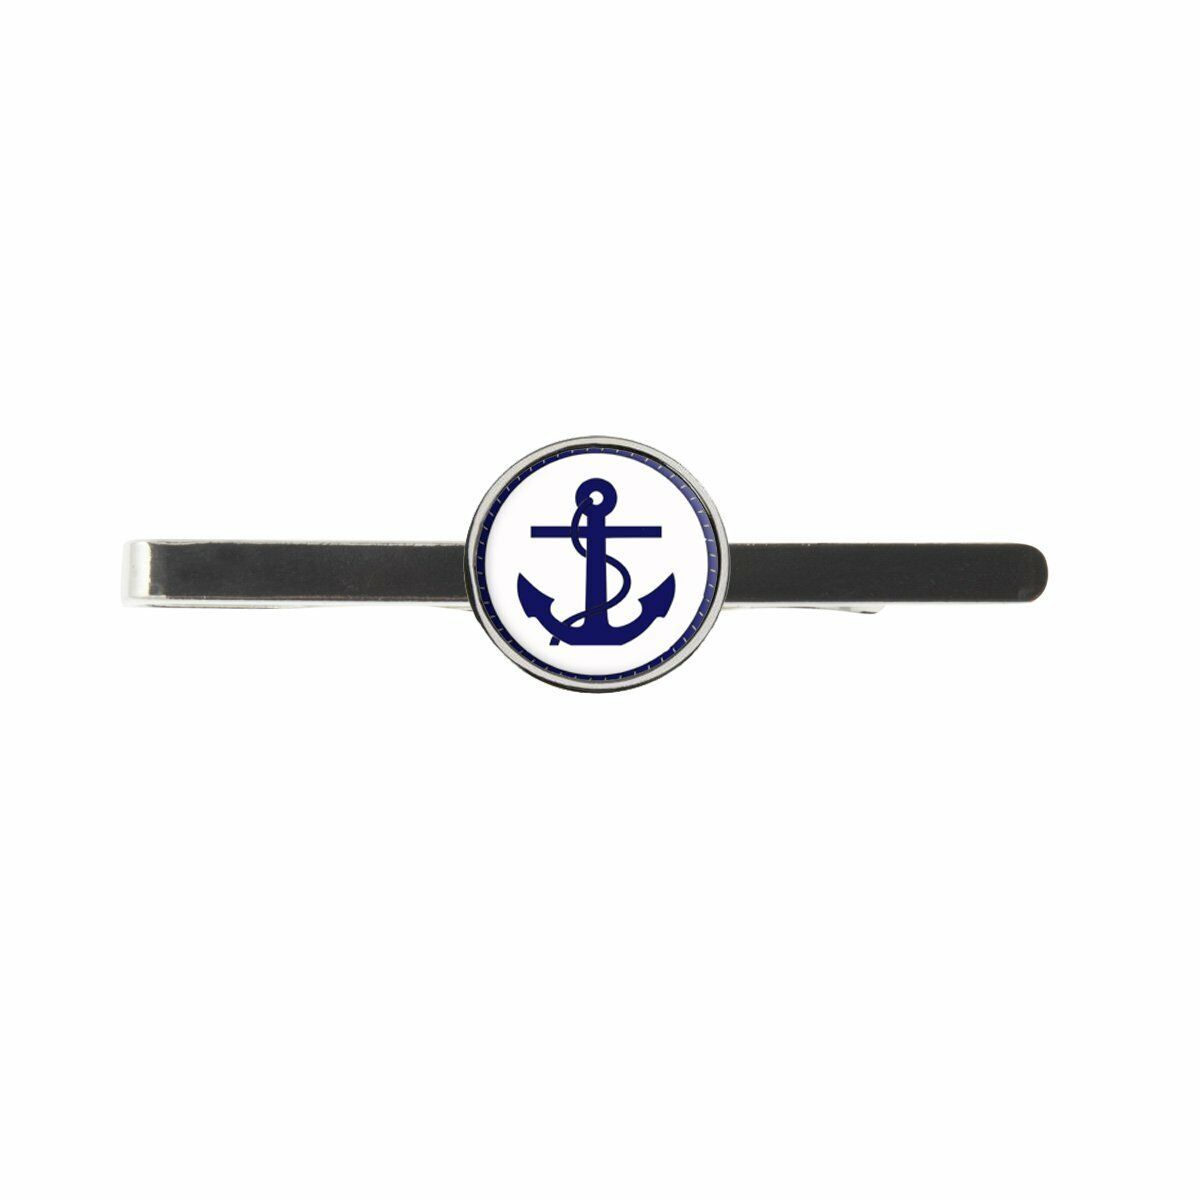 Anchor Mens Tie Slide Ideal Birthday Fathers Day Gift C499